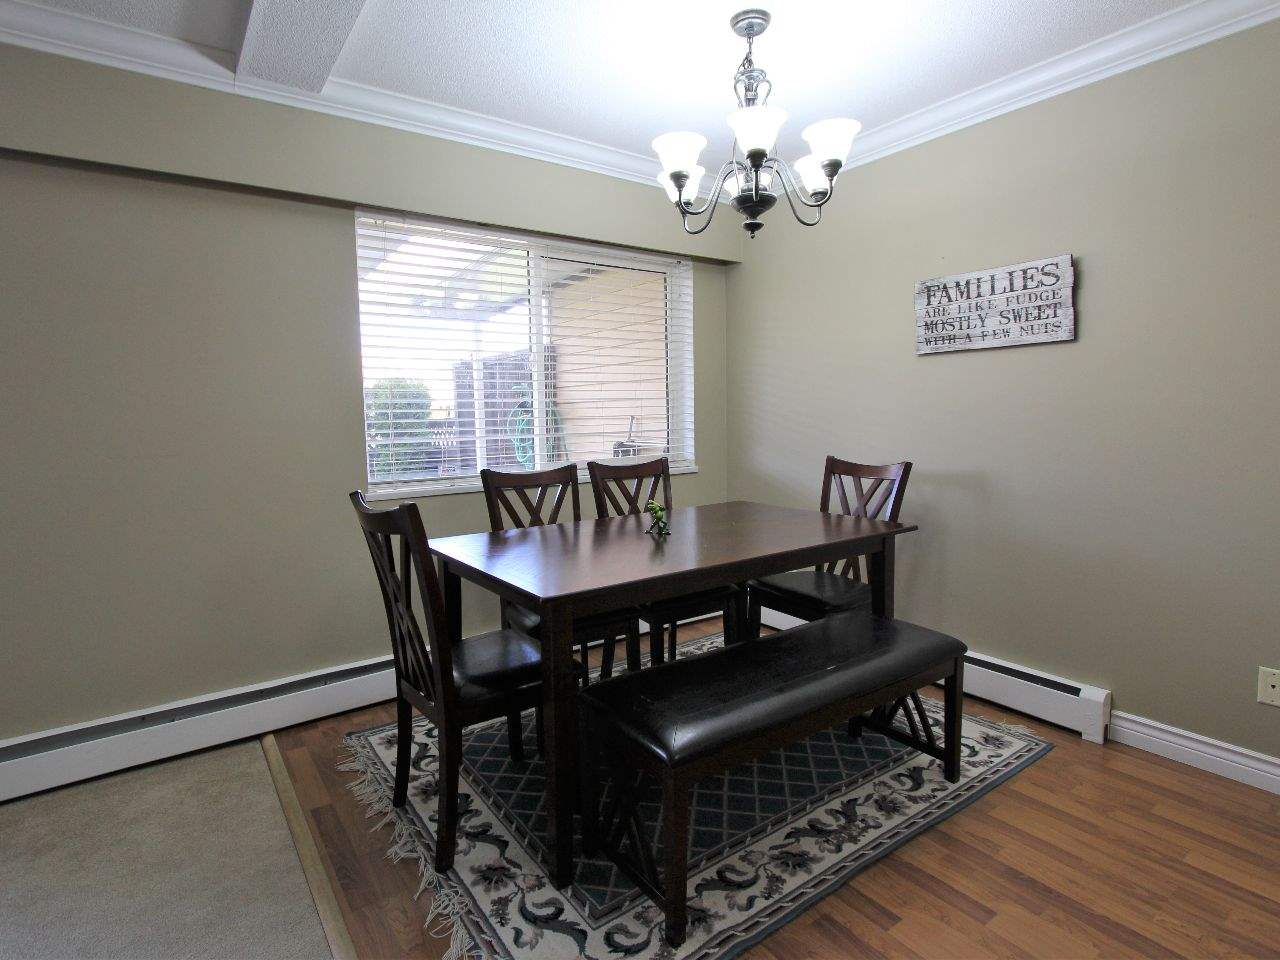 Photo 7: 606 2445 WARE Street in Abbotsford: Central Abbotsford Townhouse for sale : MLS® # R2059494